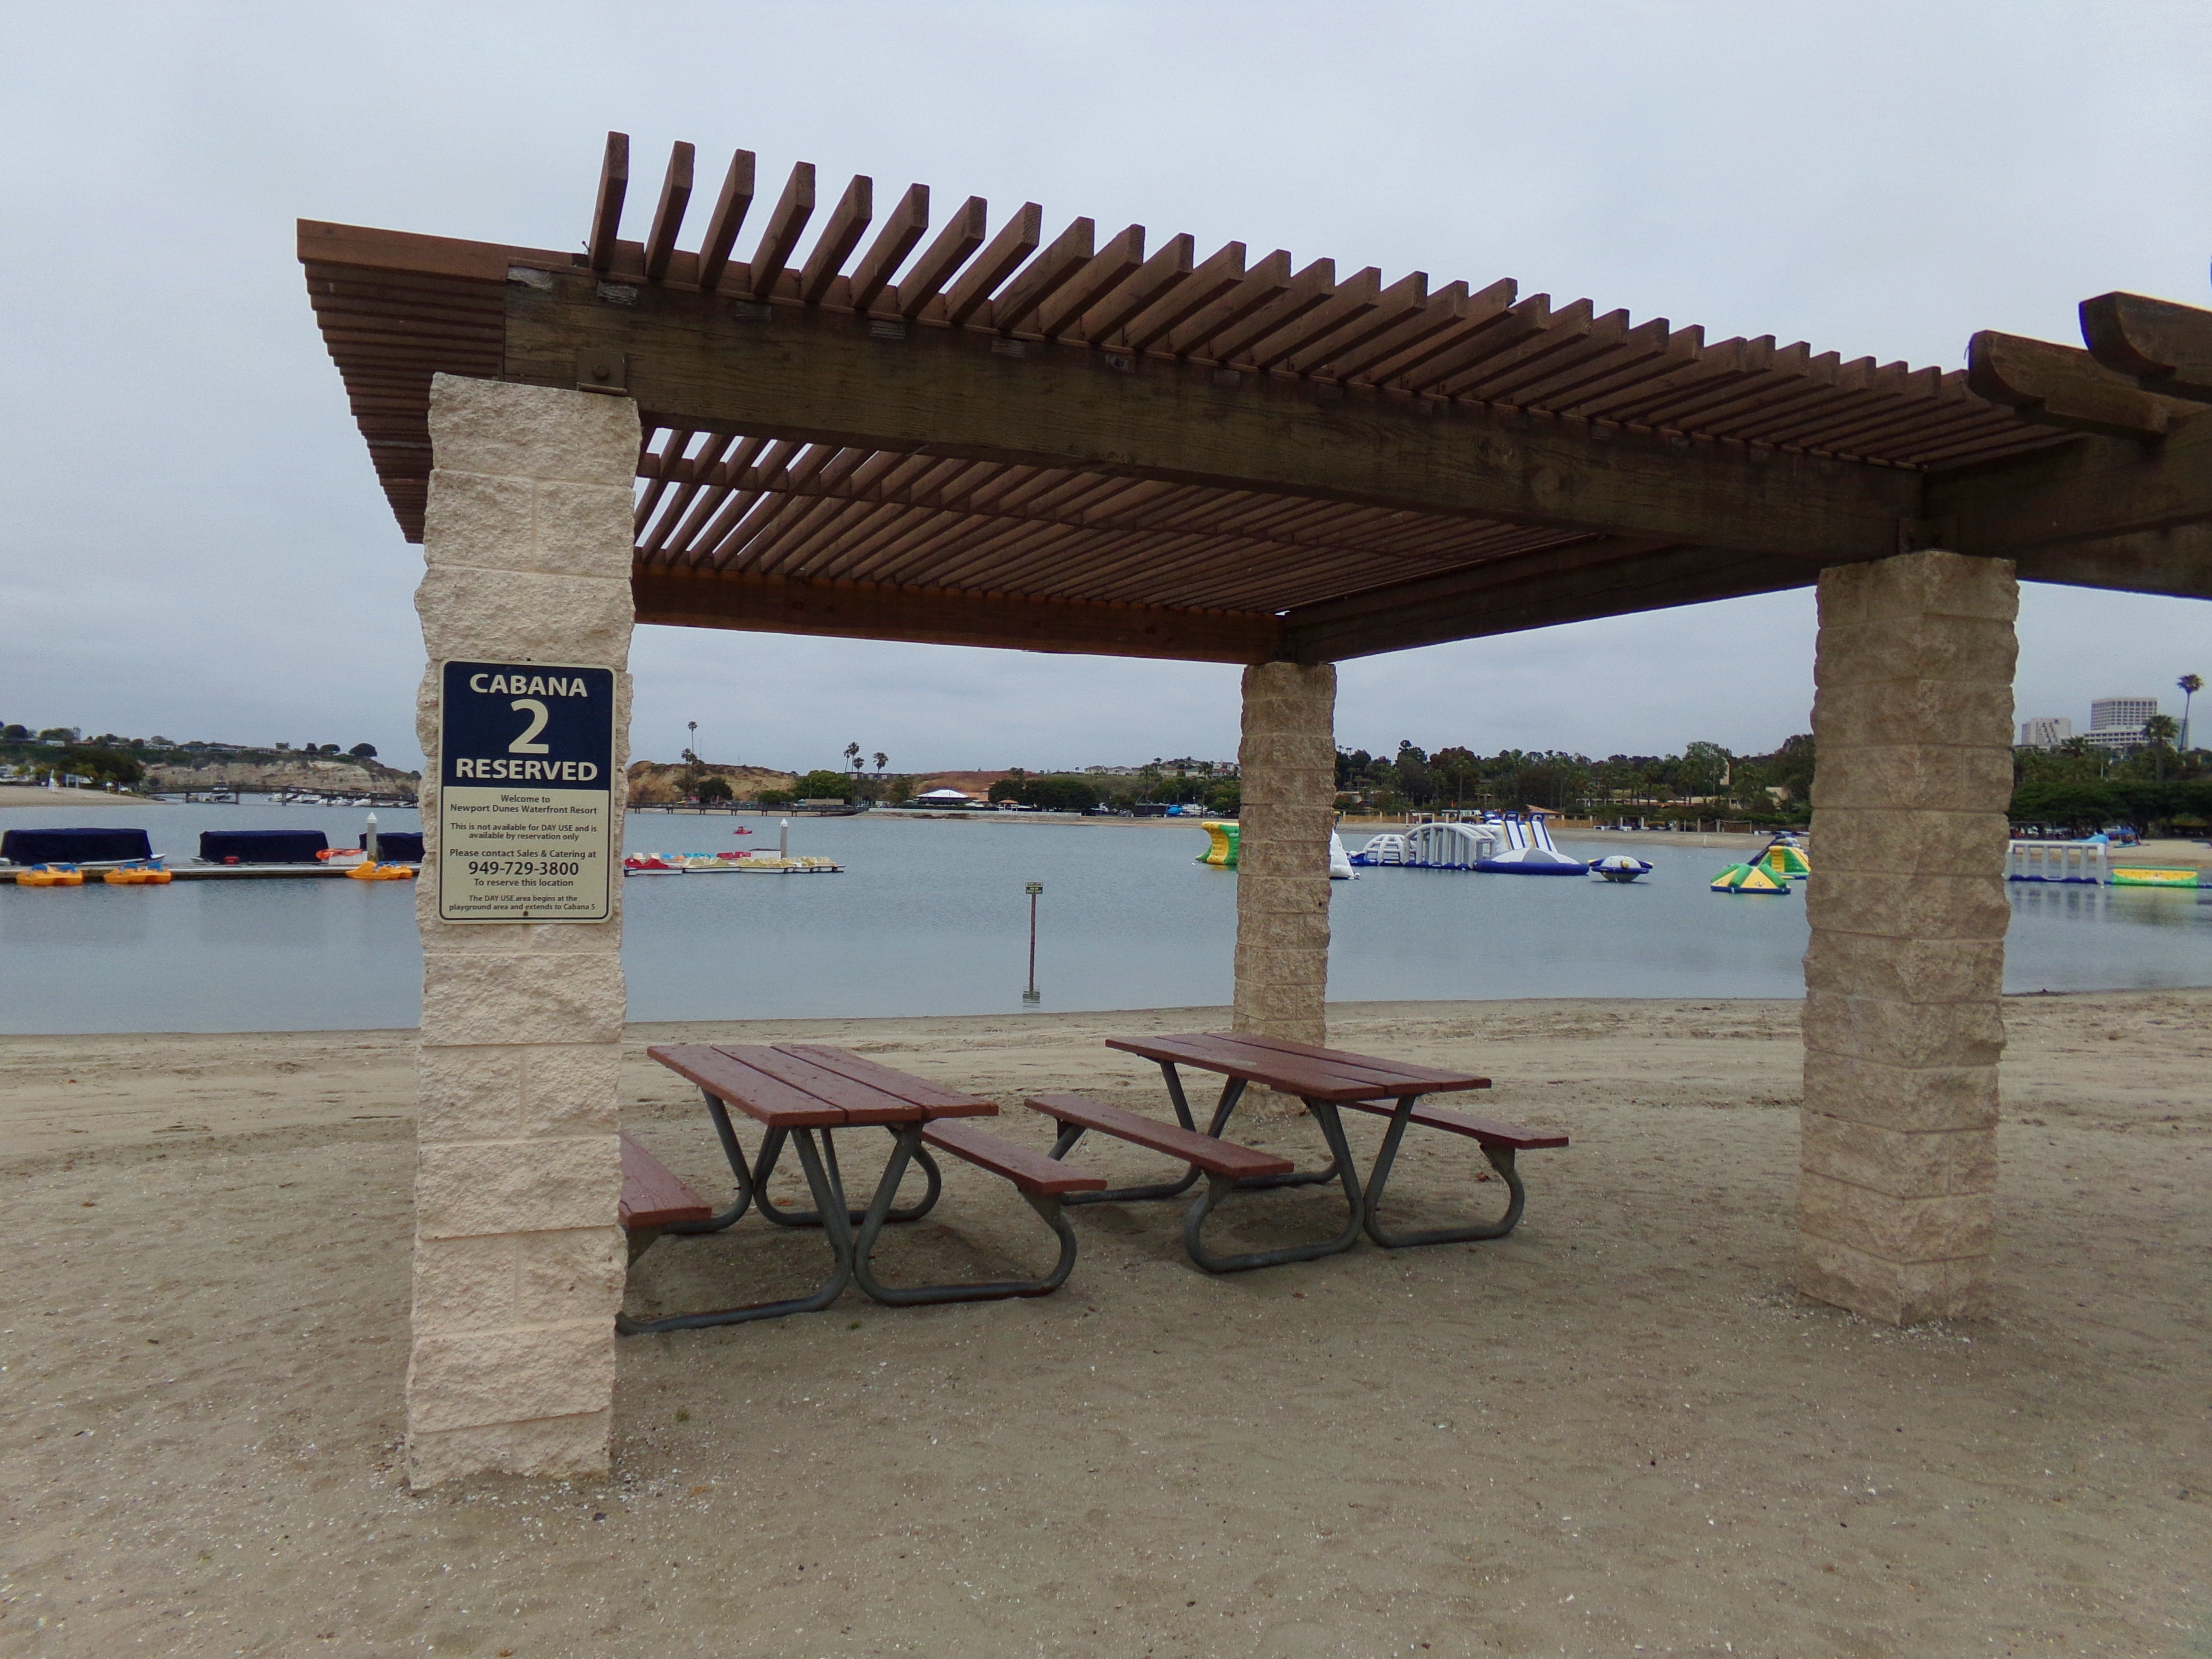 Cabanas can be reserved on the beach